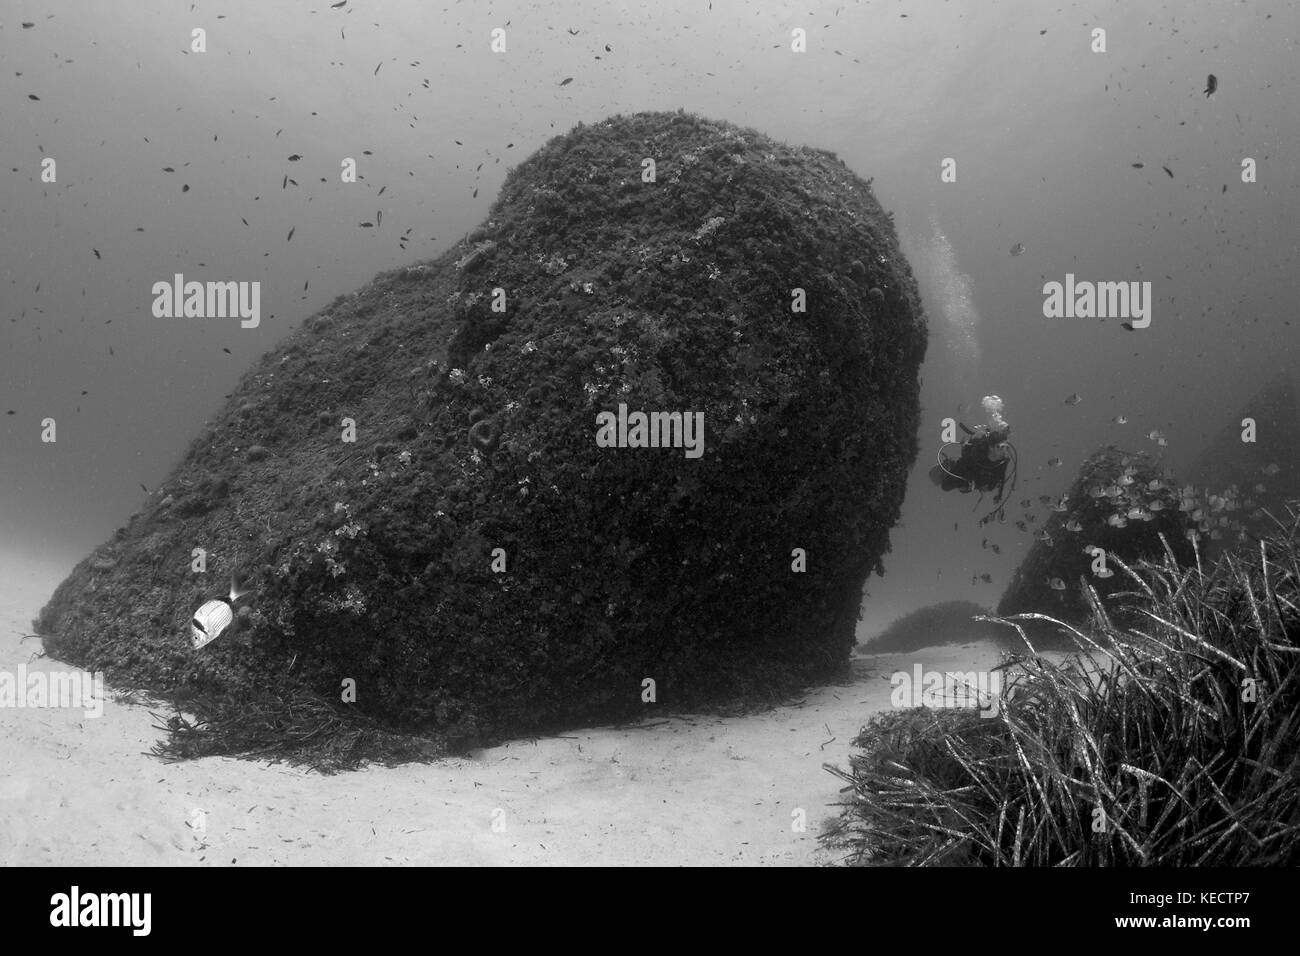 B&W Underwater landscape showing a diver at Es Banc dive site at Formentera (Balearic Islands, Spain) - Stock Image